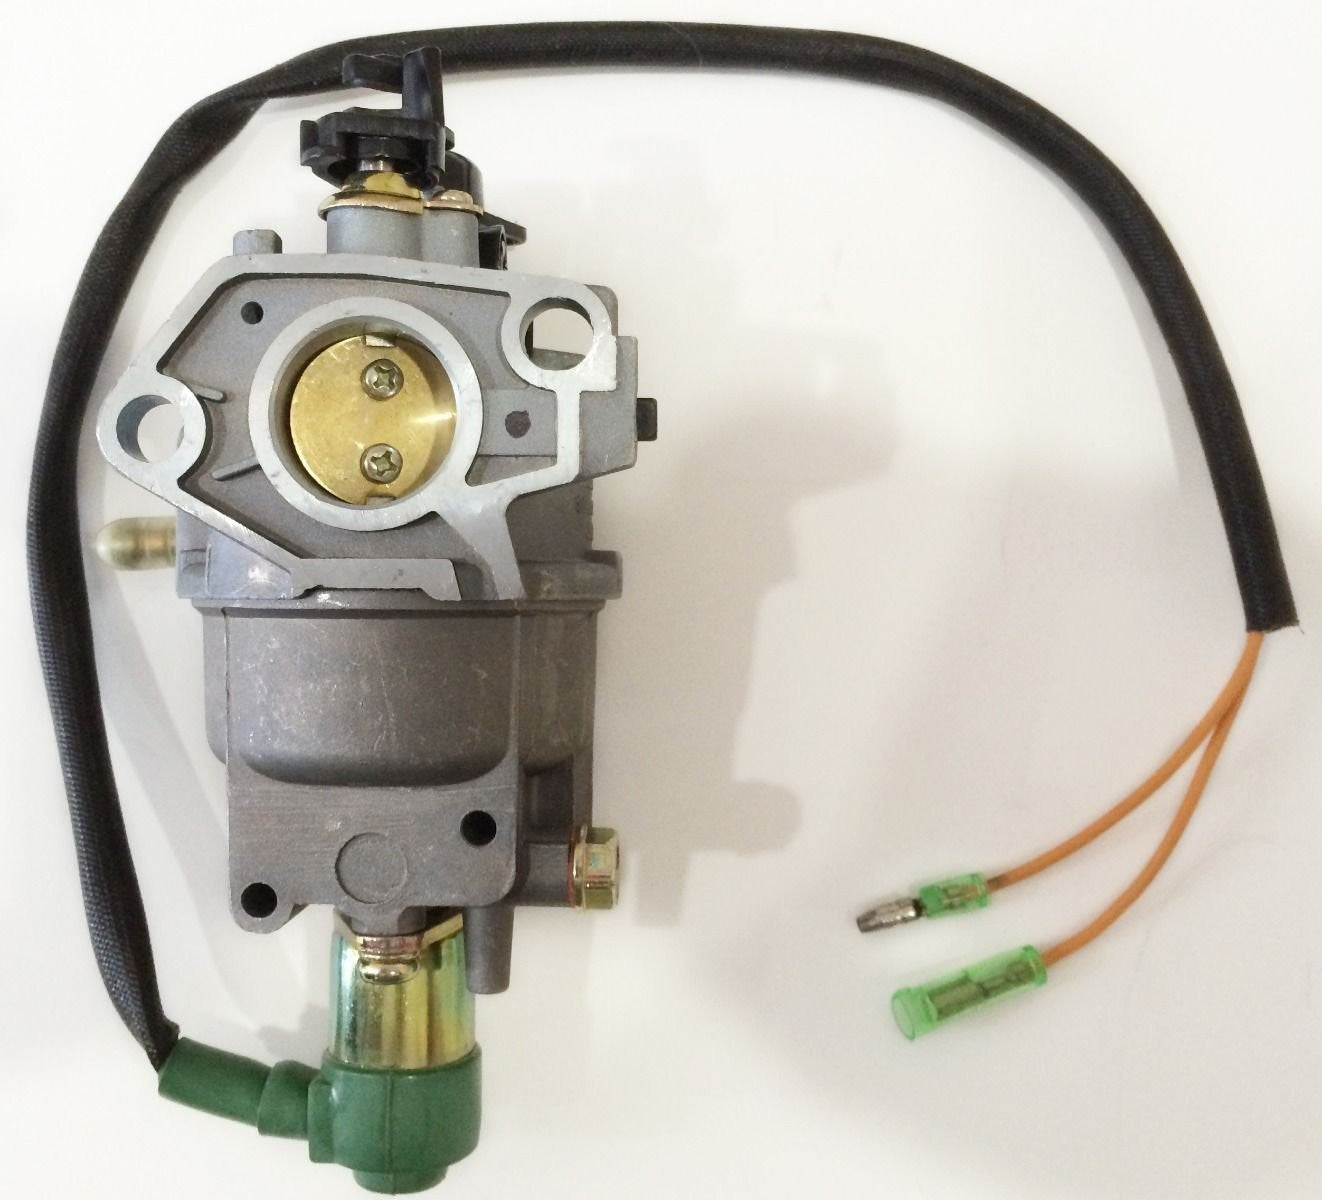 NEW CARBURETOR FOR 11HP FITS HONDA GENERATOR GX340 - AE-Power